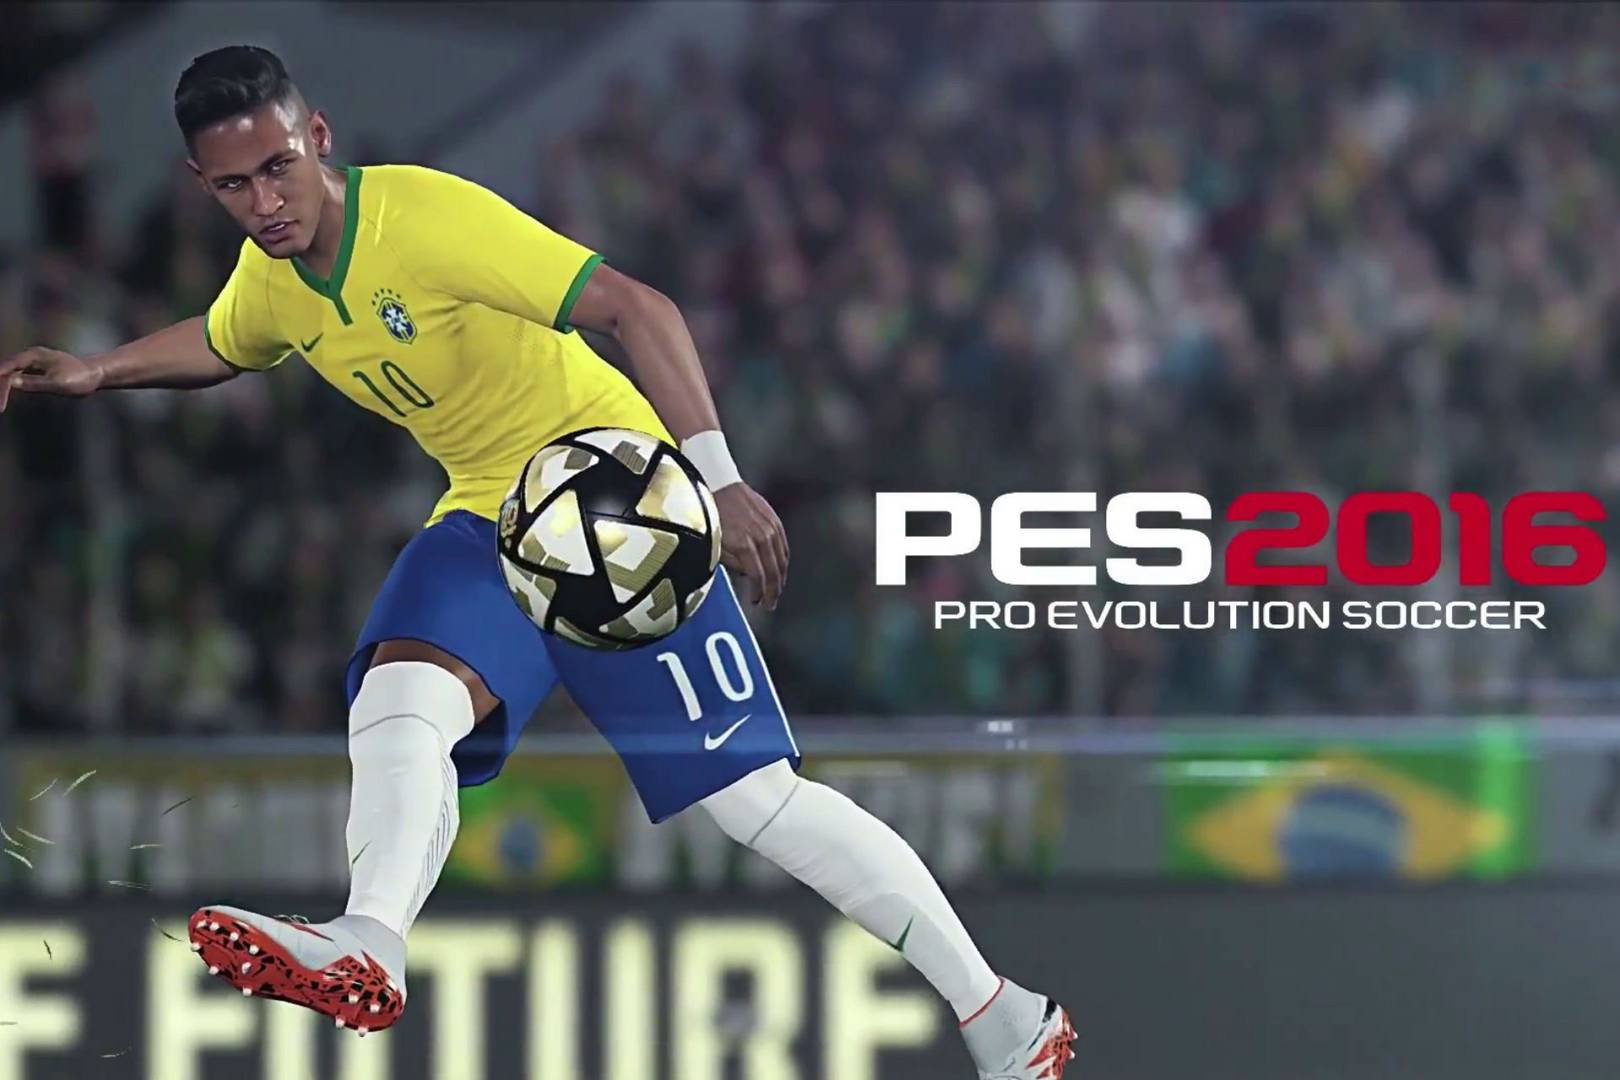 Pro Evolution Soccer survives as Konami quits console gaming